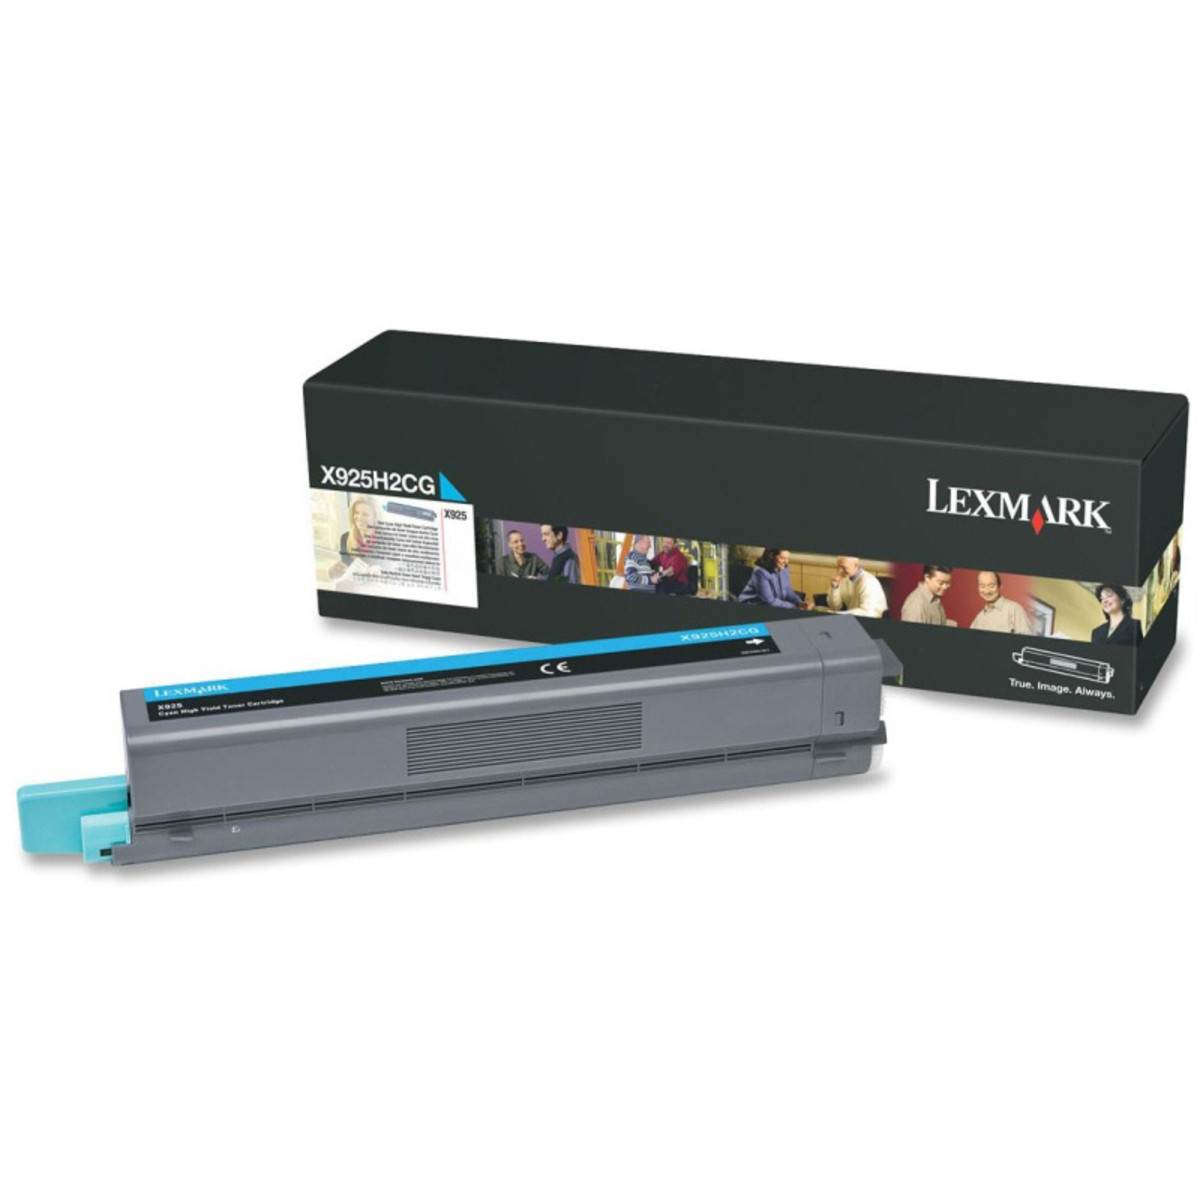 Lexmark X925H2CG Cyan Toner Cartridge - High Yield